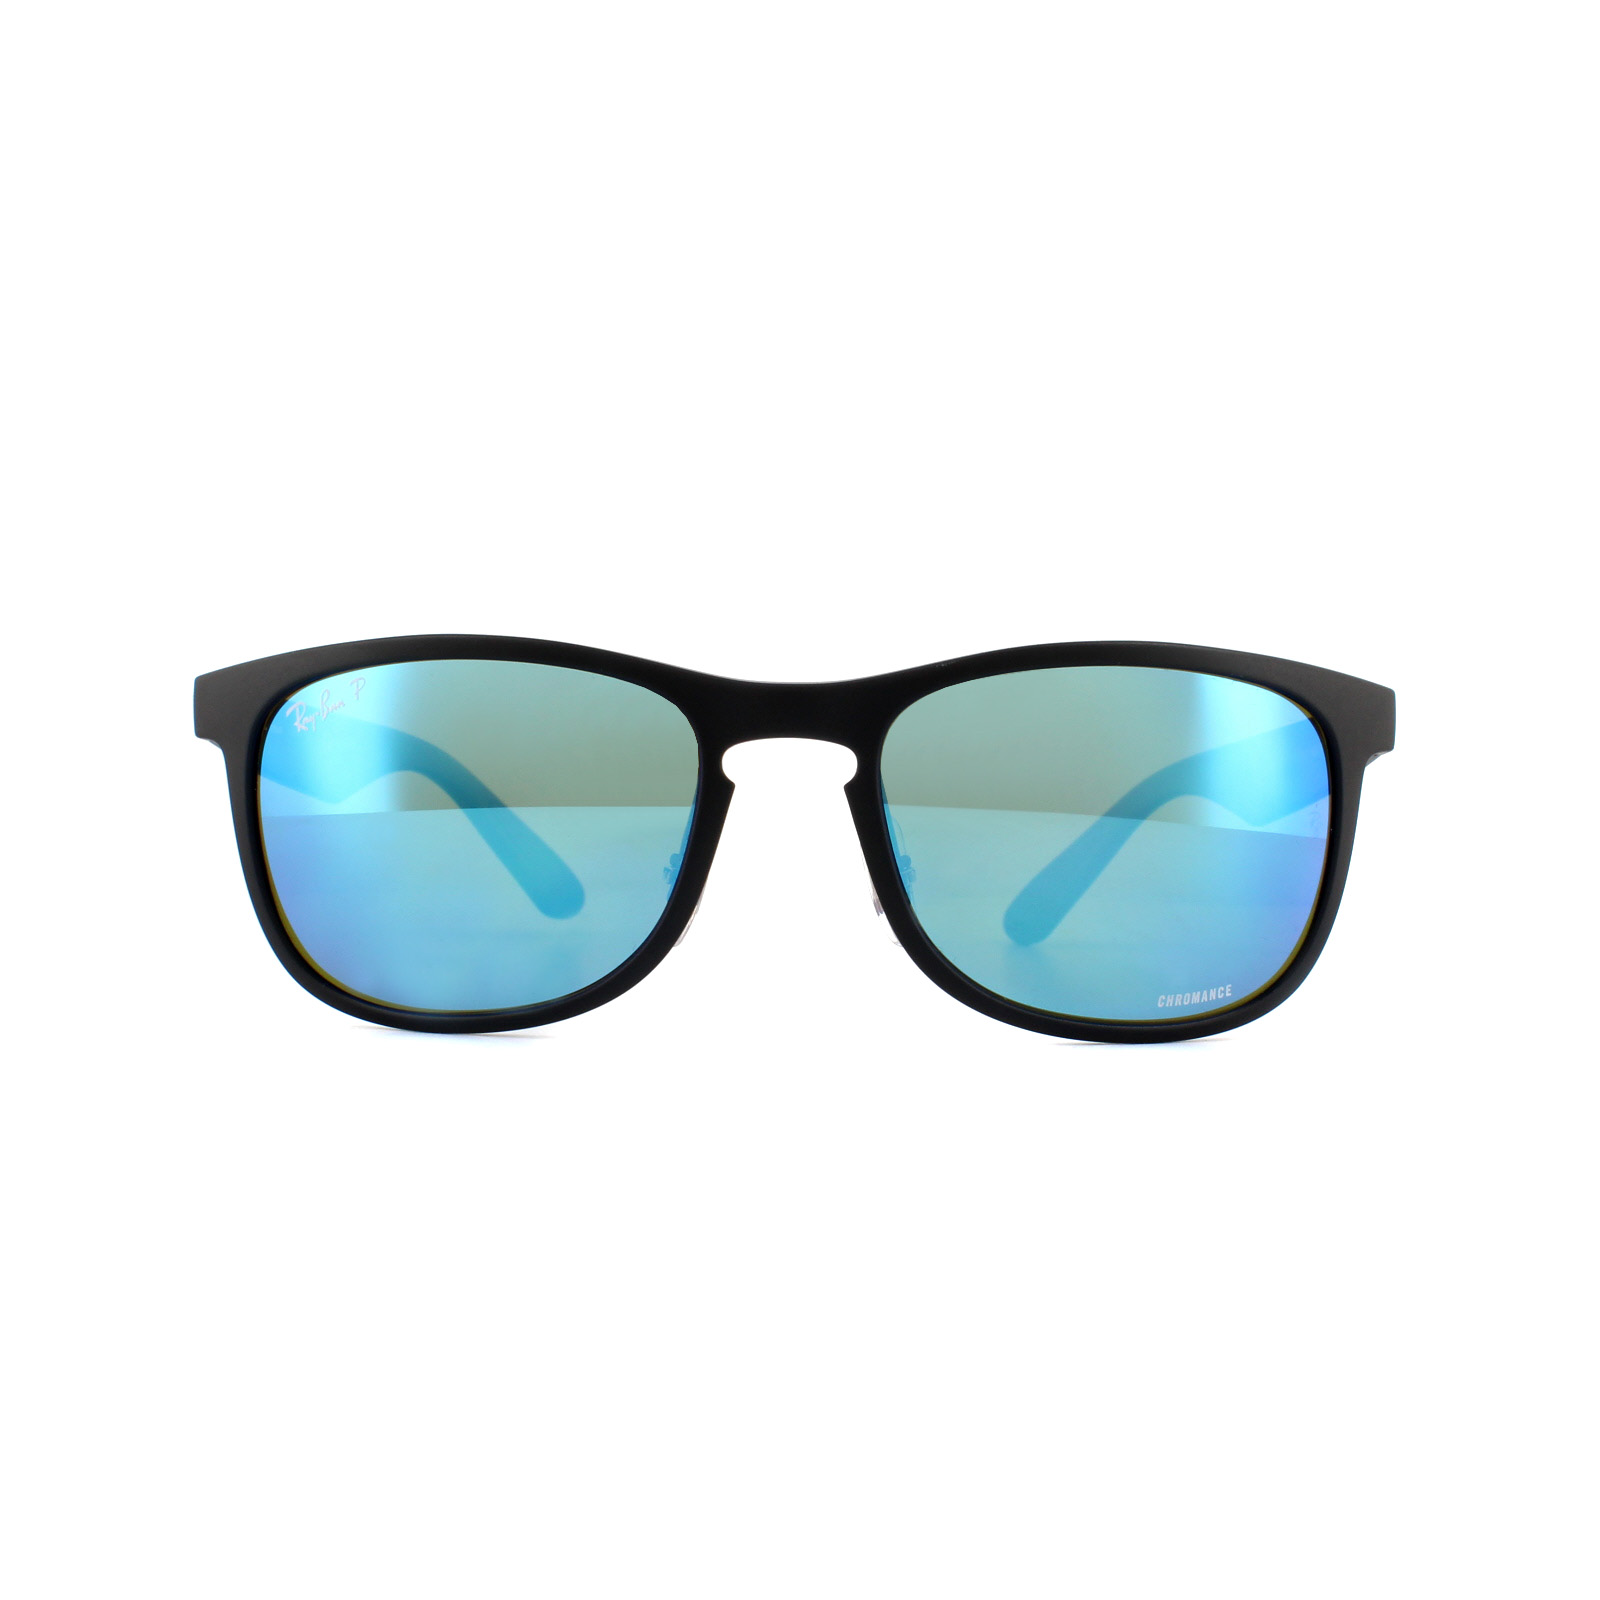 b912b2158f05 Sentinel Ray-Ban Sunglasses RB4263 601SA1 Matte Black Blue Mirror Polarized  Chromance